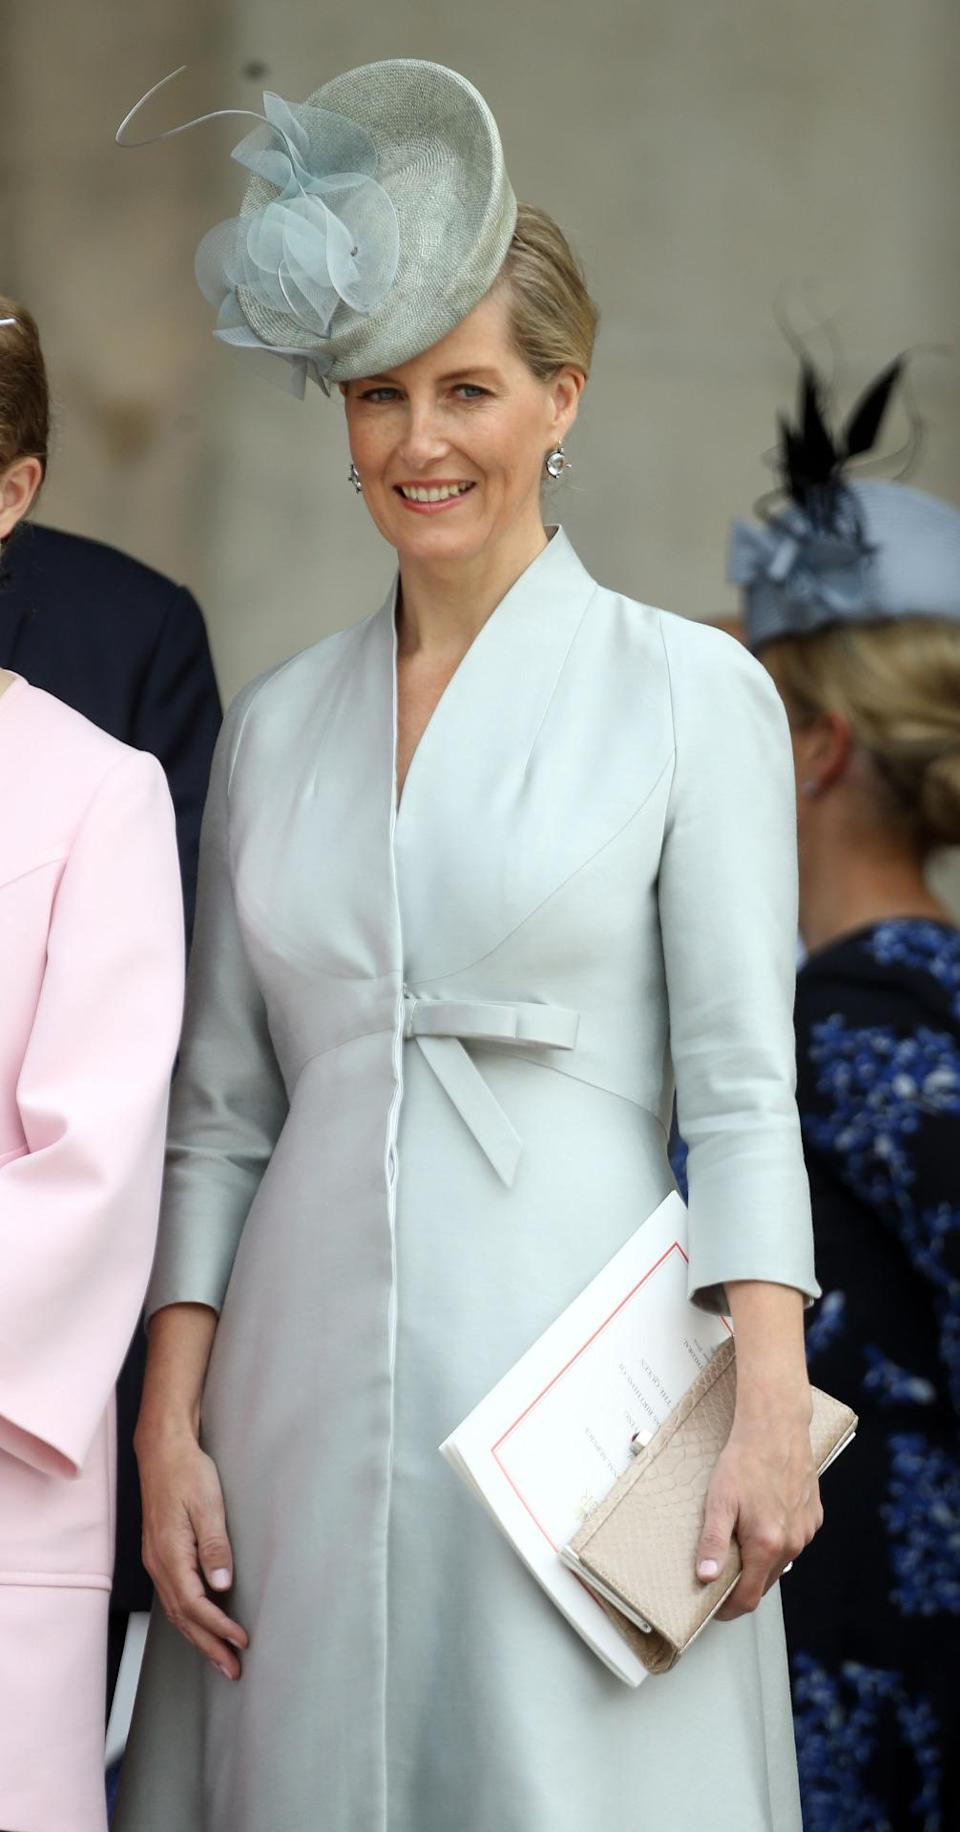 <p>Sophie, Countess of Wessex, dressed, like Kate, in a pale blue ensemble and matching hat. <i>(Photo: PA Images)</i><br></p>